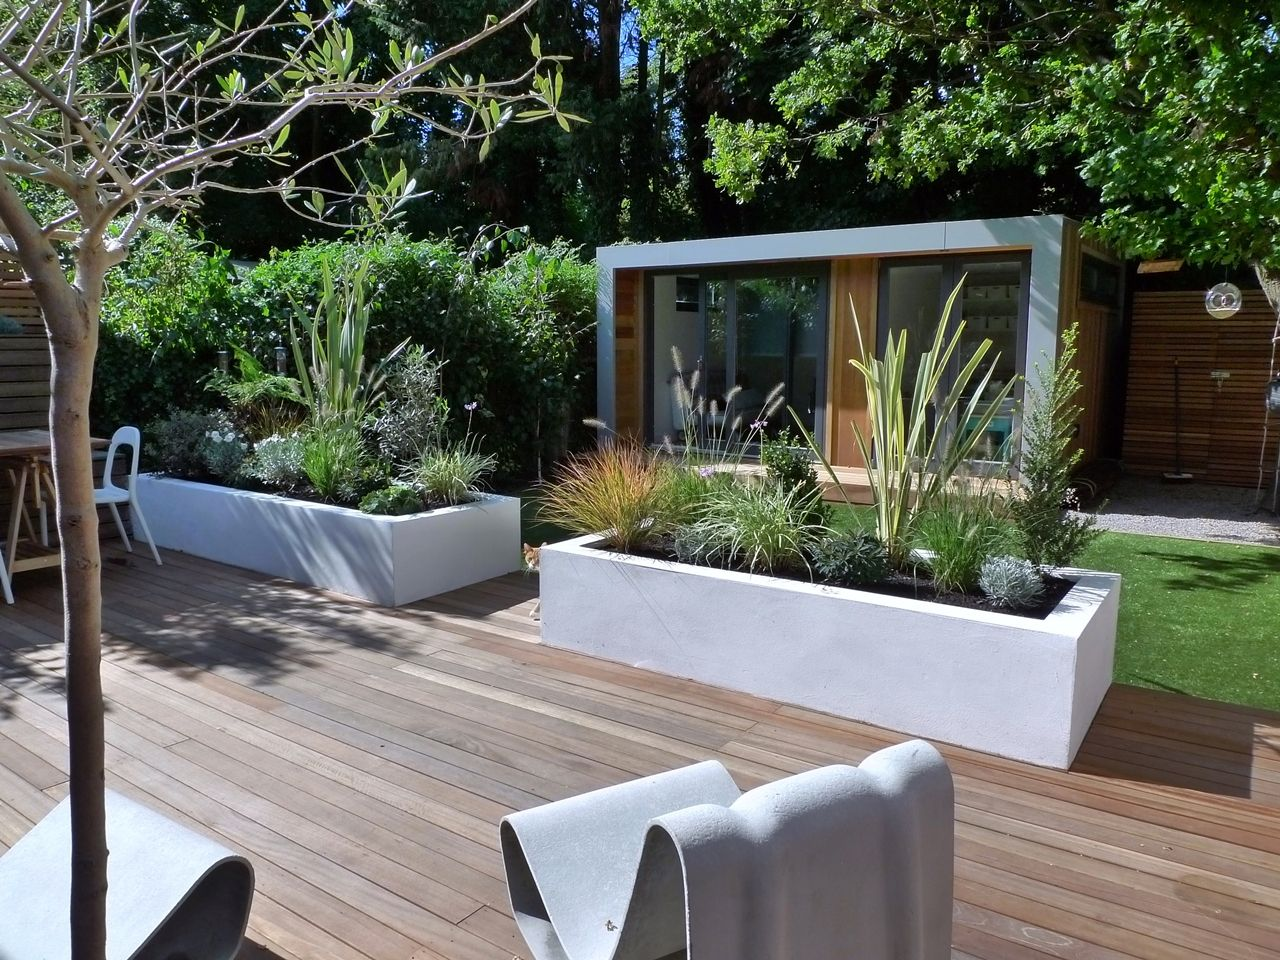 Gardening Design Ideas garden design ideas Modern Garden Design Ideas Great Lighting Fireplace Hardwood Screen Plastered Rendered Walls Clapham Battersea South West London Led Strip Lights